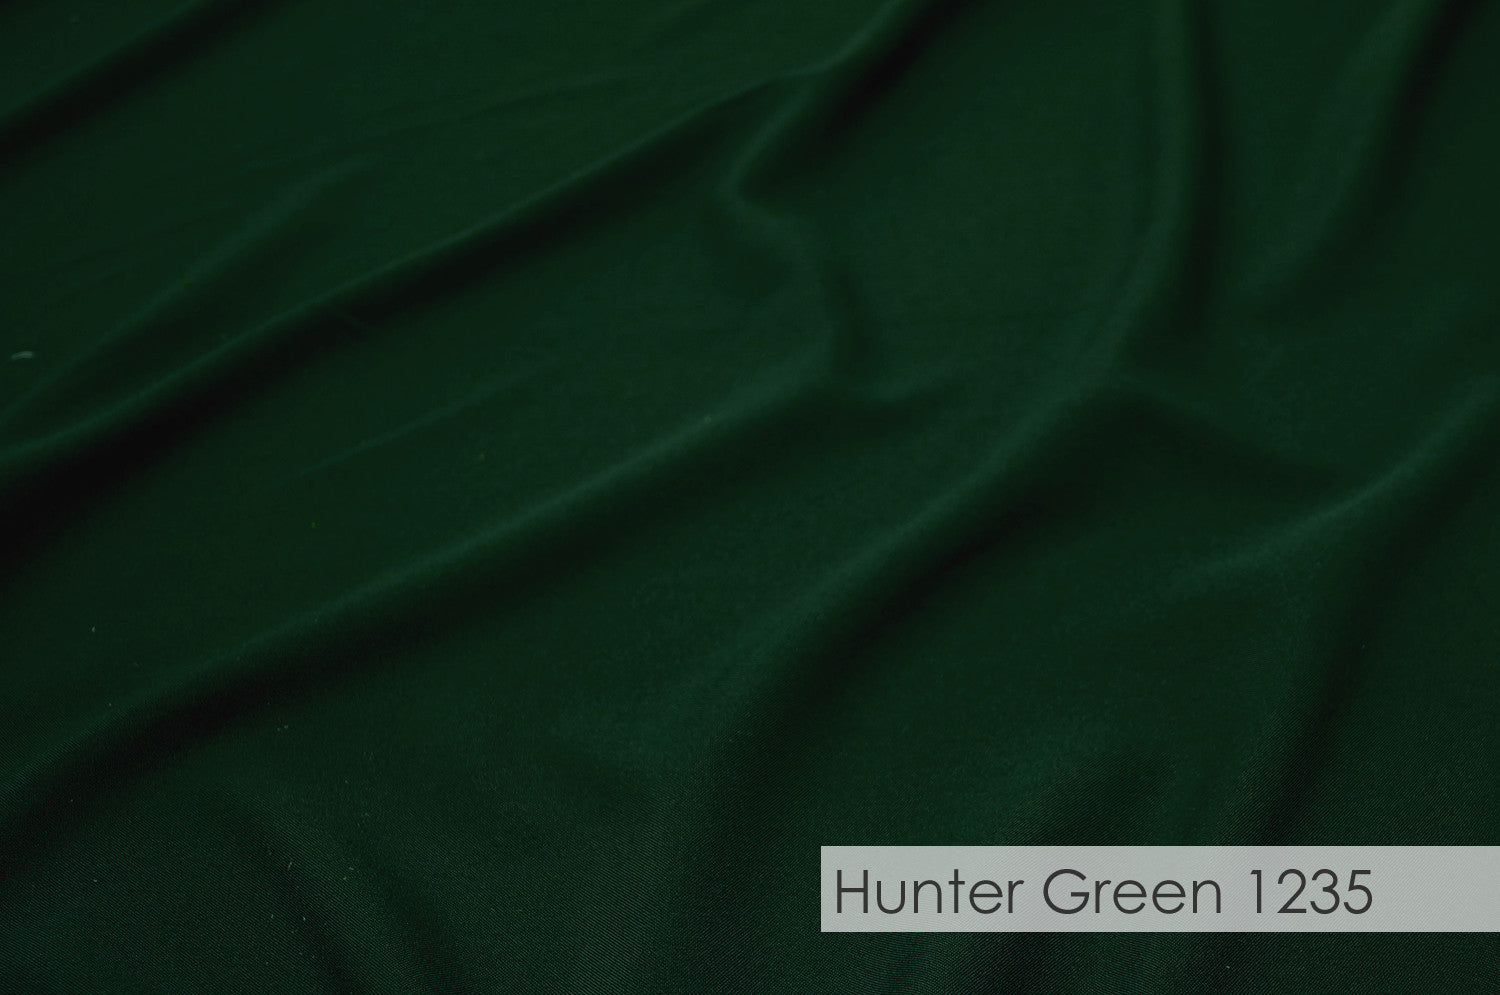 HUNTER GREEN 1235